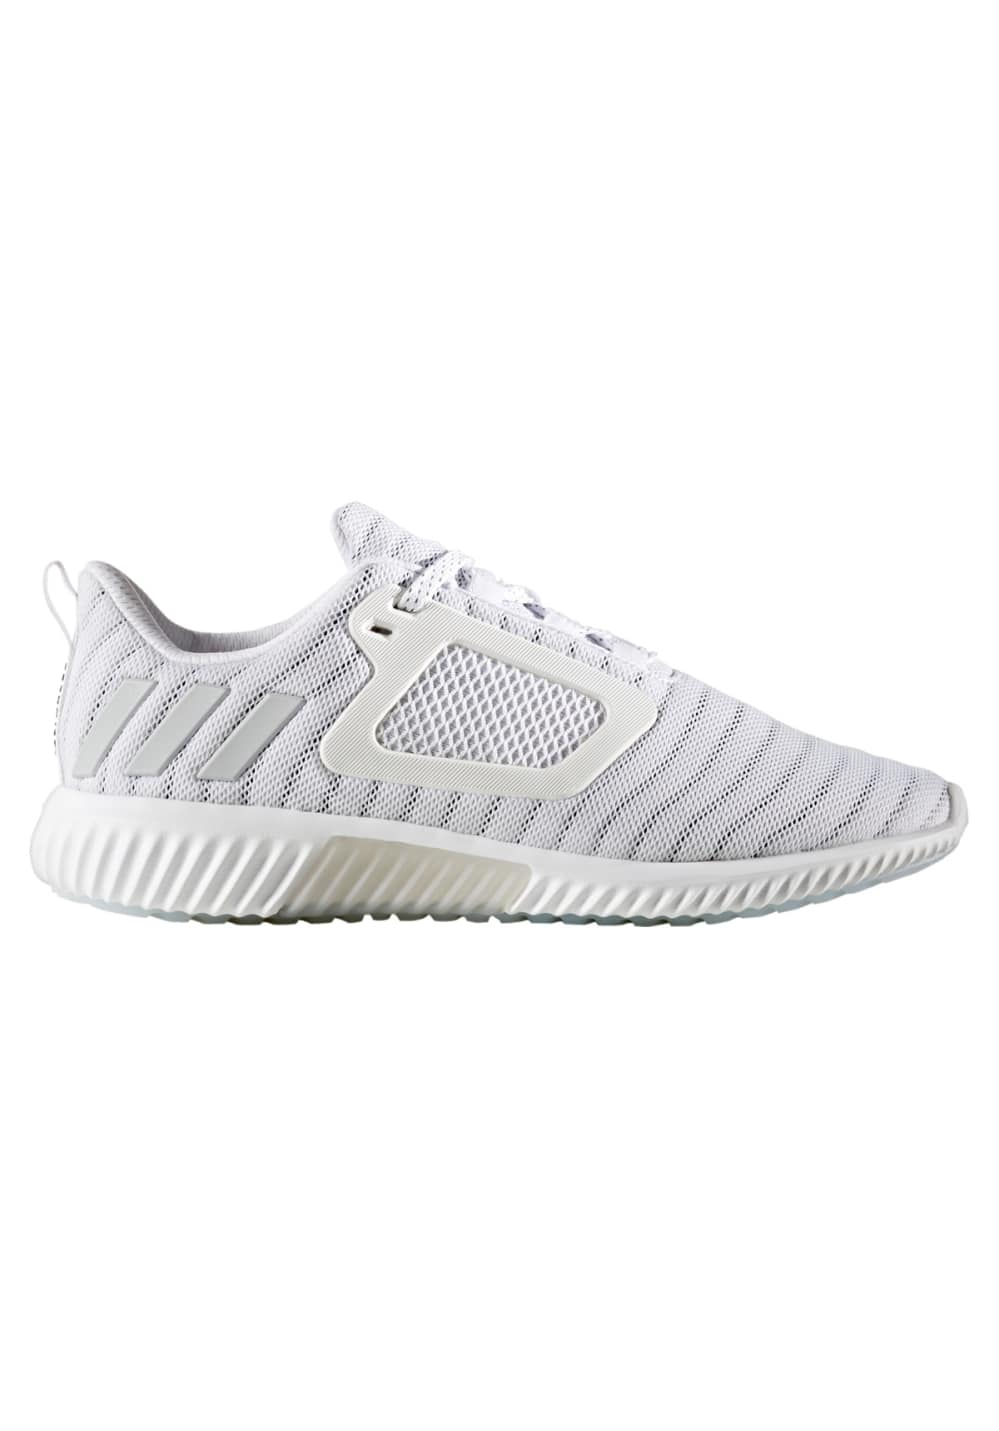 watch 2b139 e5c66 adidas Climacool - Running shoes for Women - White